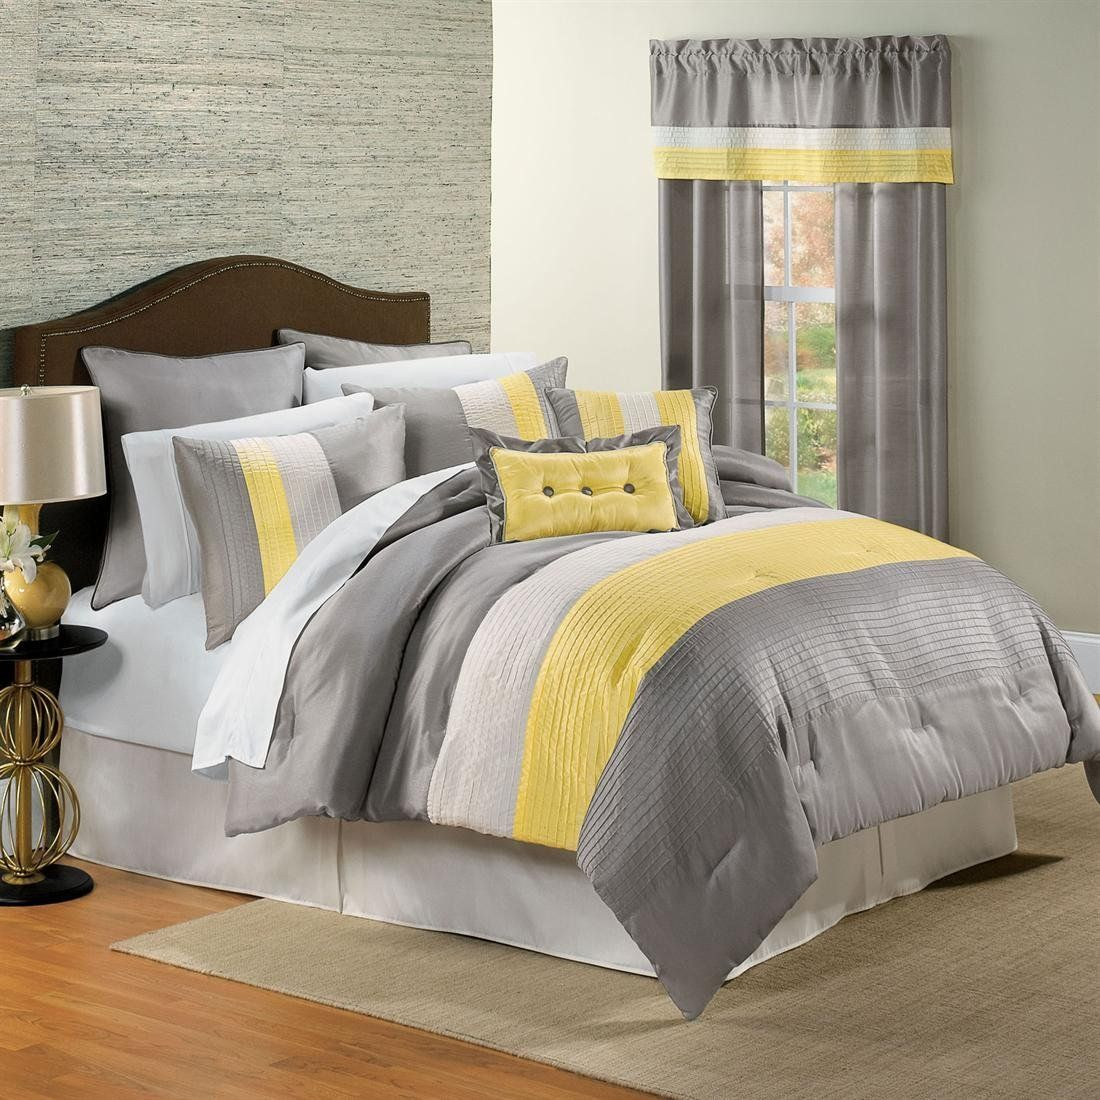 Bedroom Decor Yellow yellow and gray bedding that will make your bedroom pop